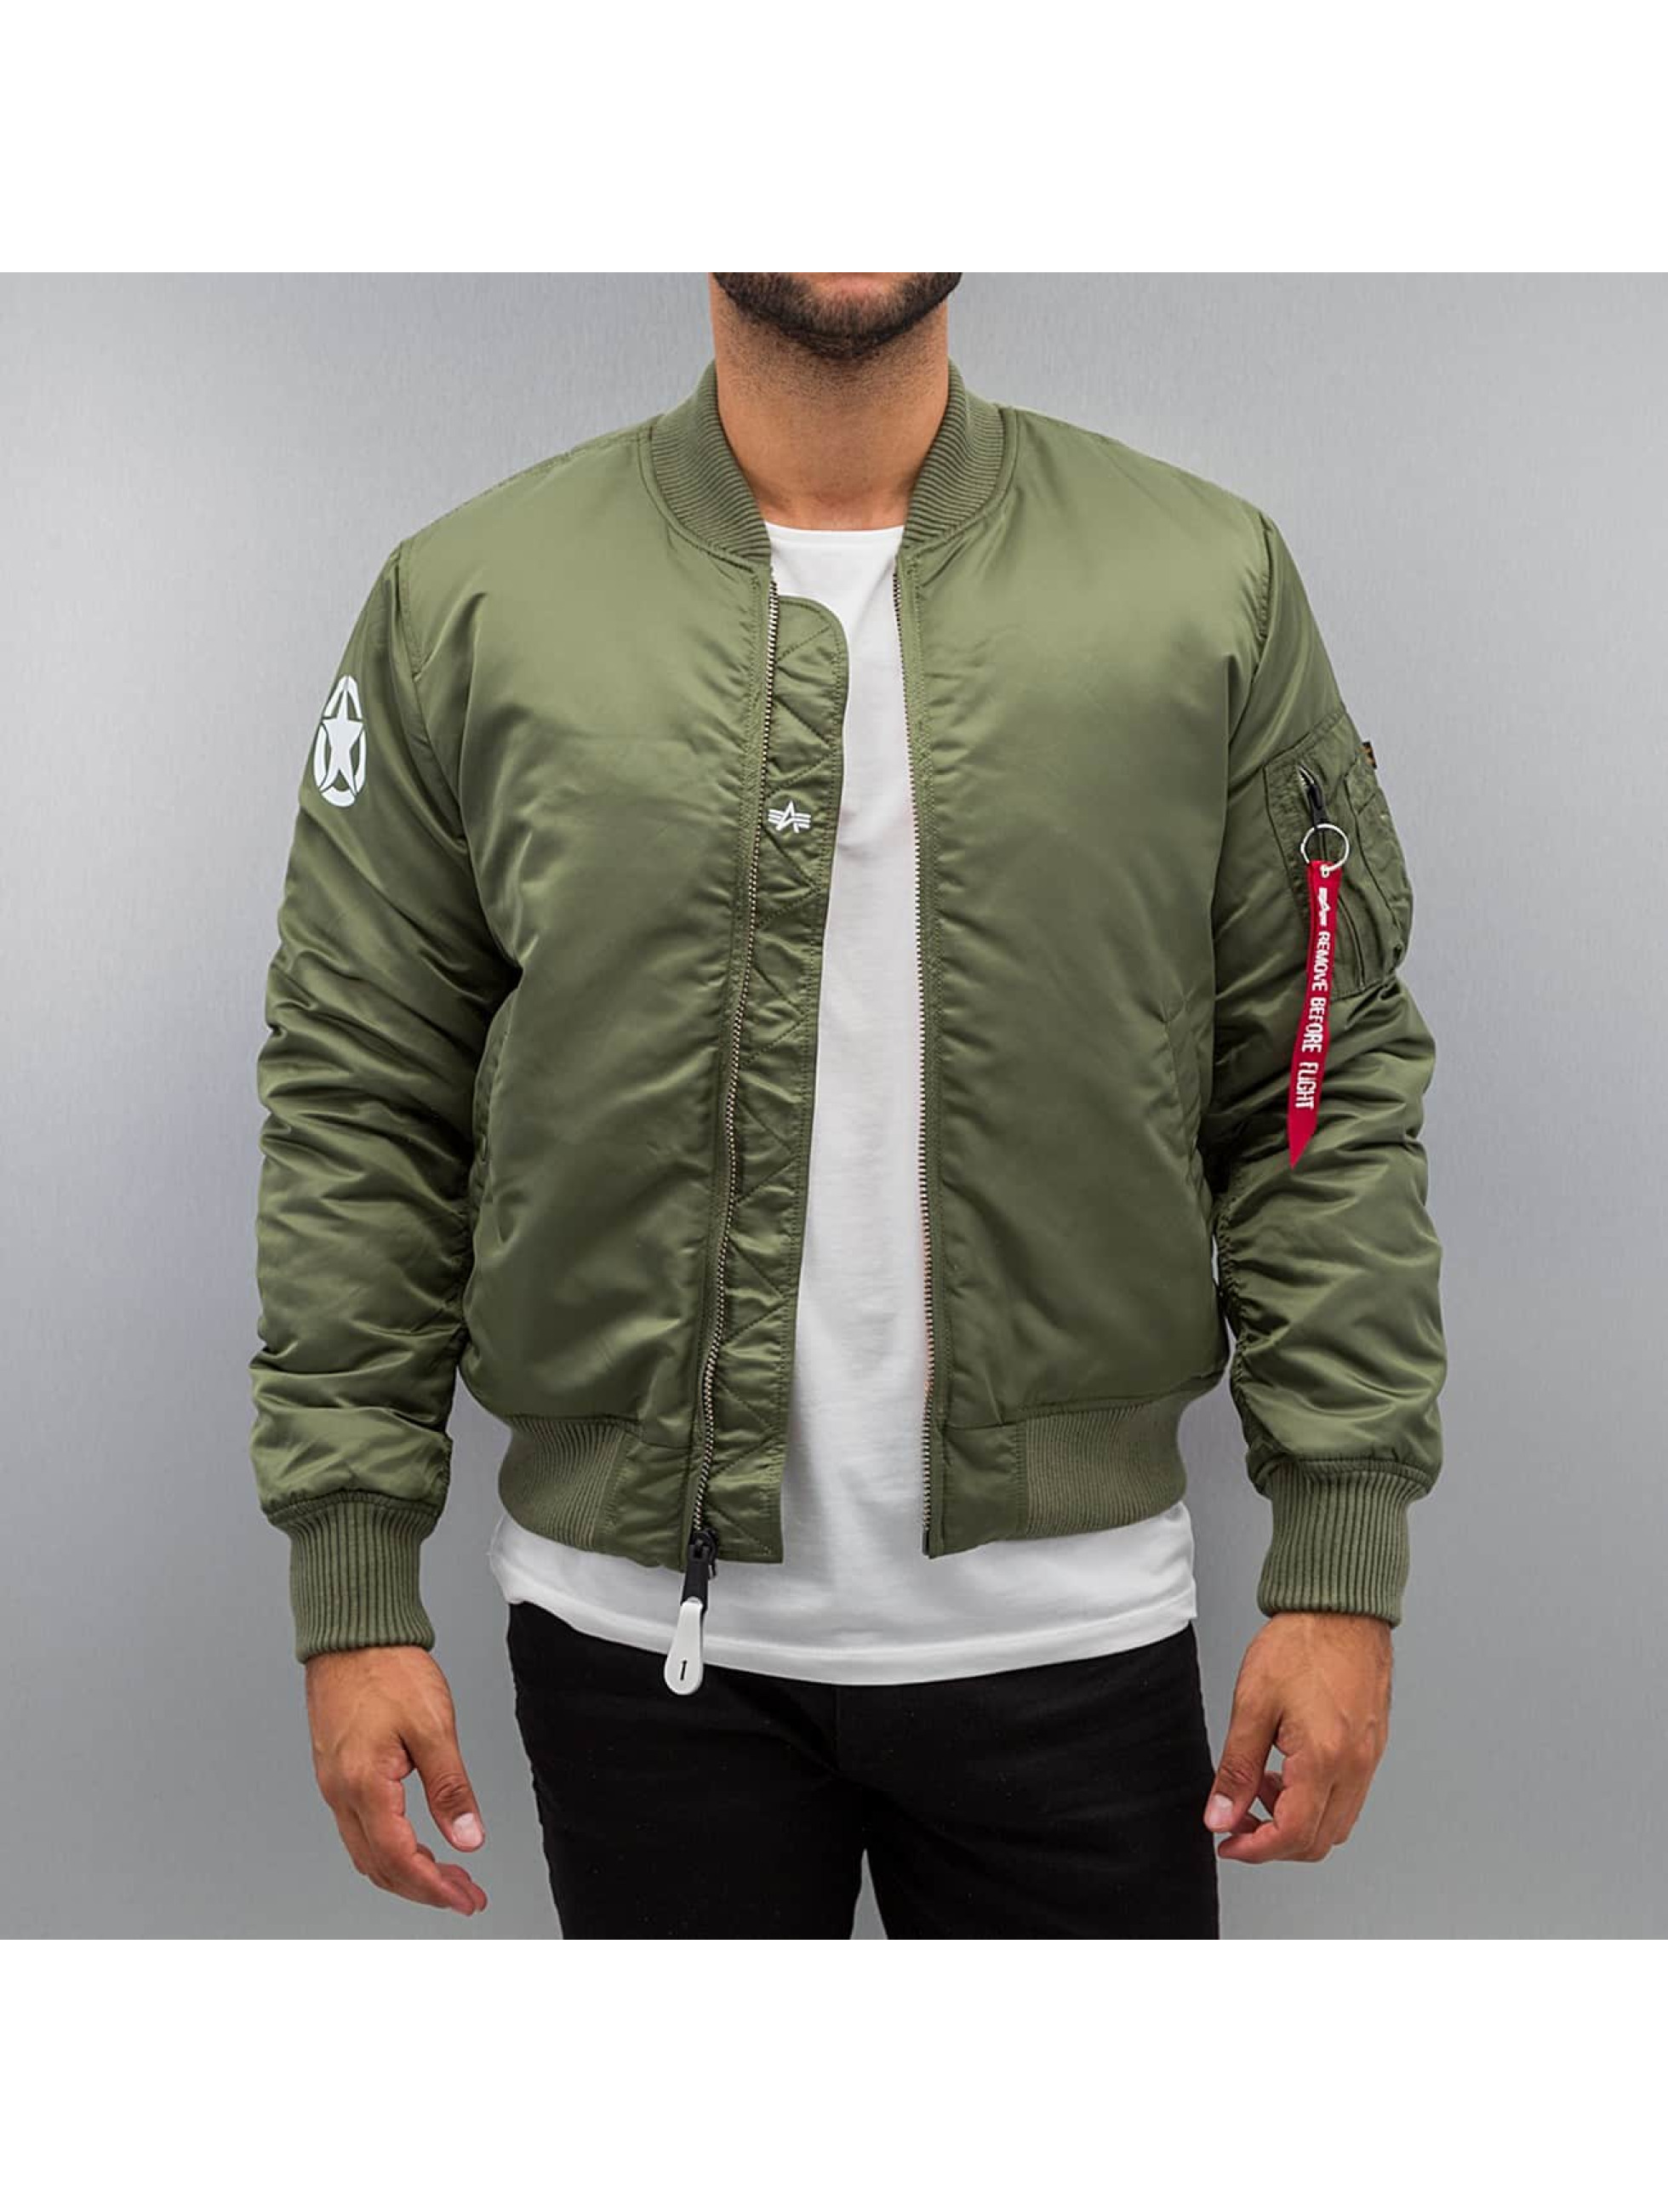 Alpha Industries jas / Bomberjack MA-1 VF Army in groen